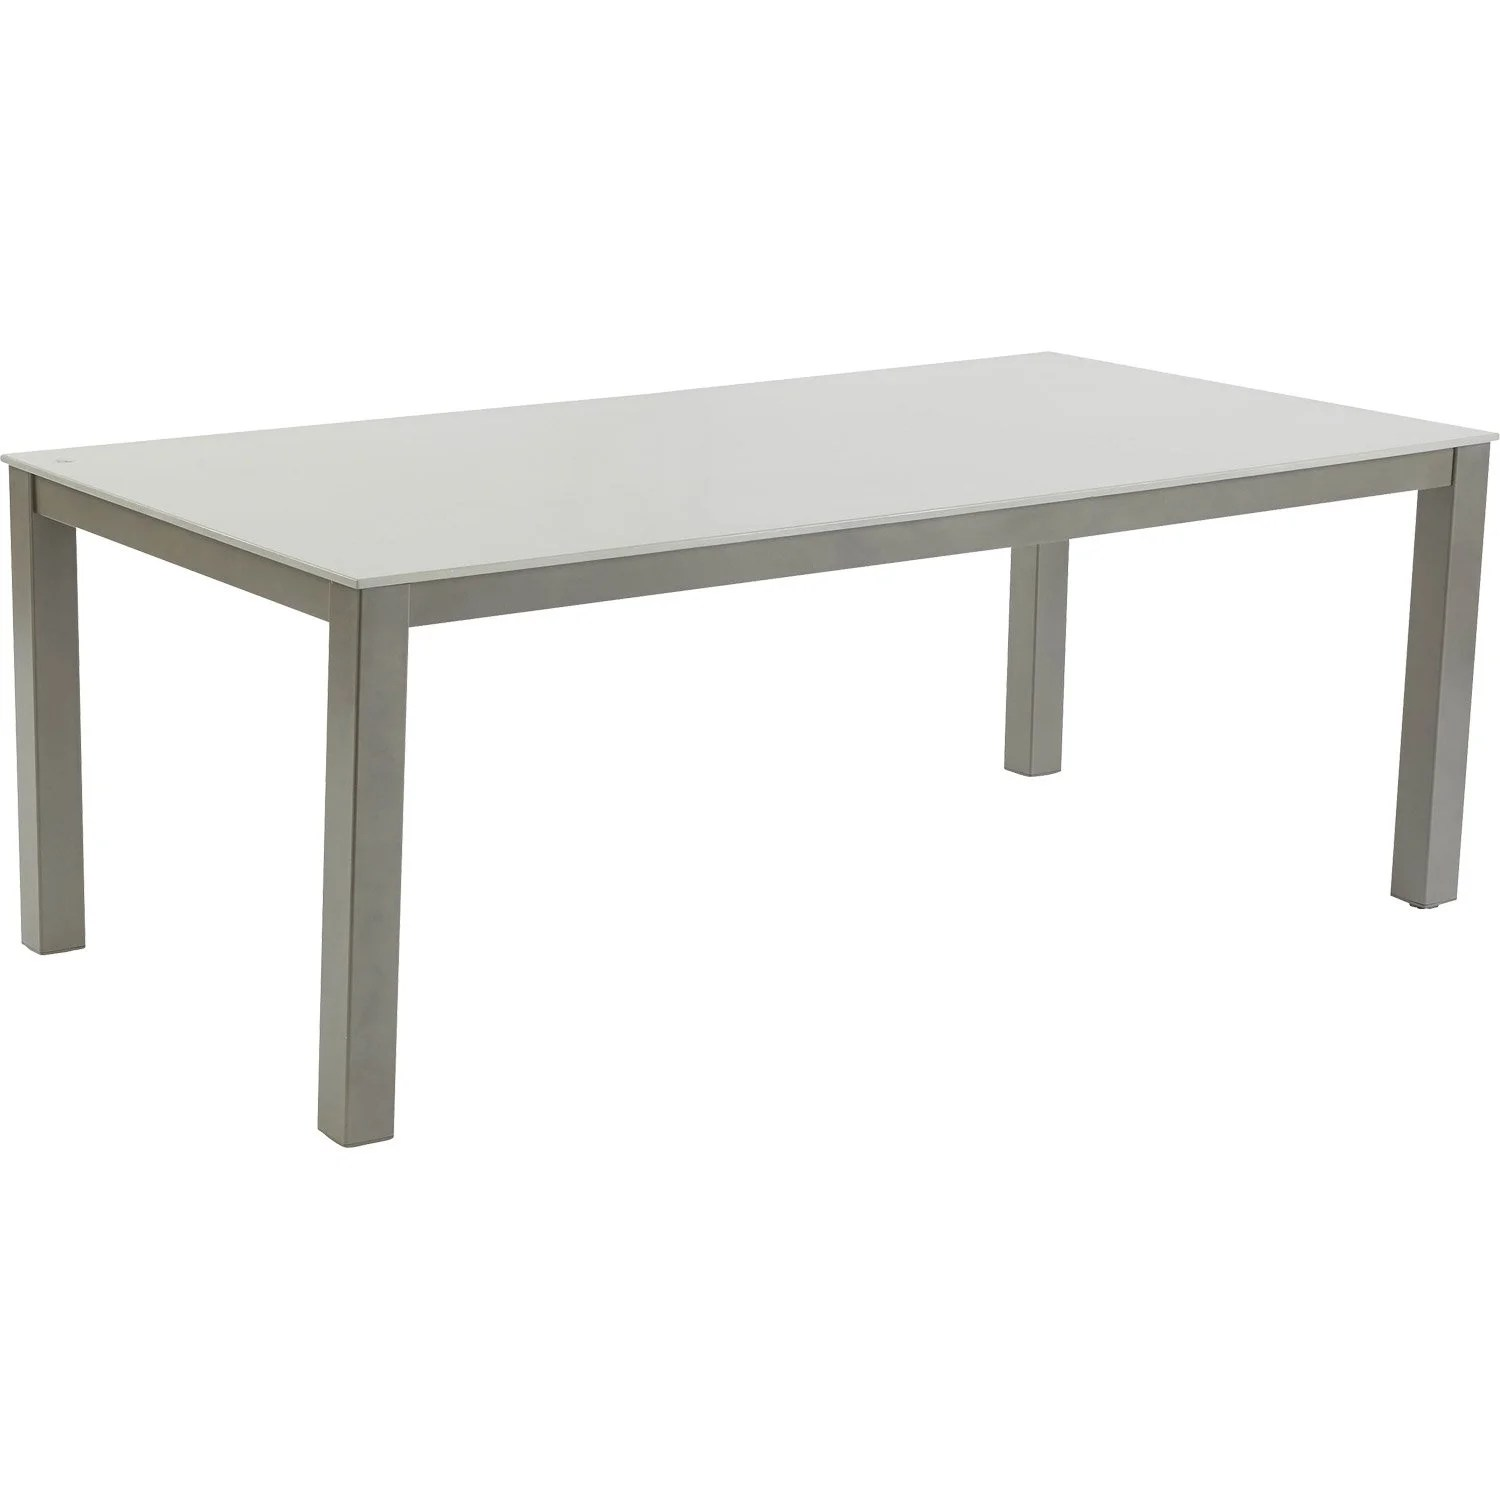 Leroy Merlin Table De Jardin Table De Jardin Rectangulaire Table 200x100cm Alu Durantie